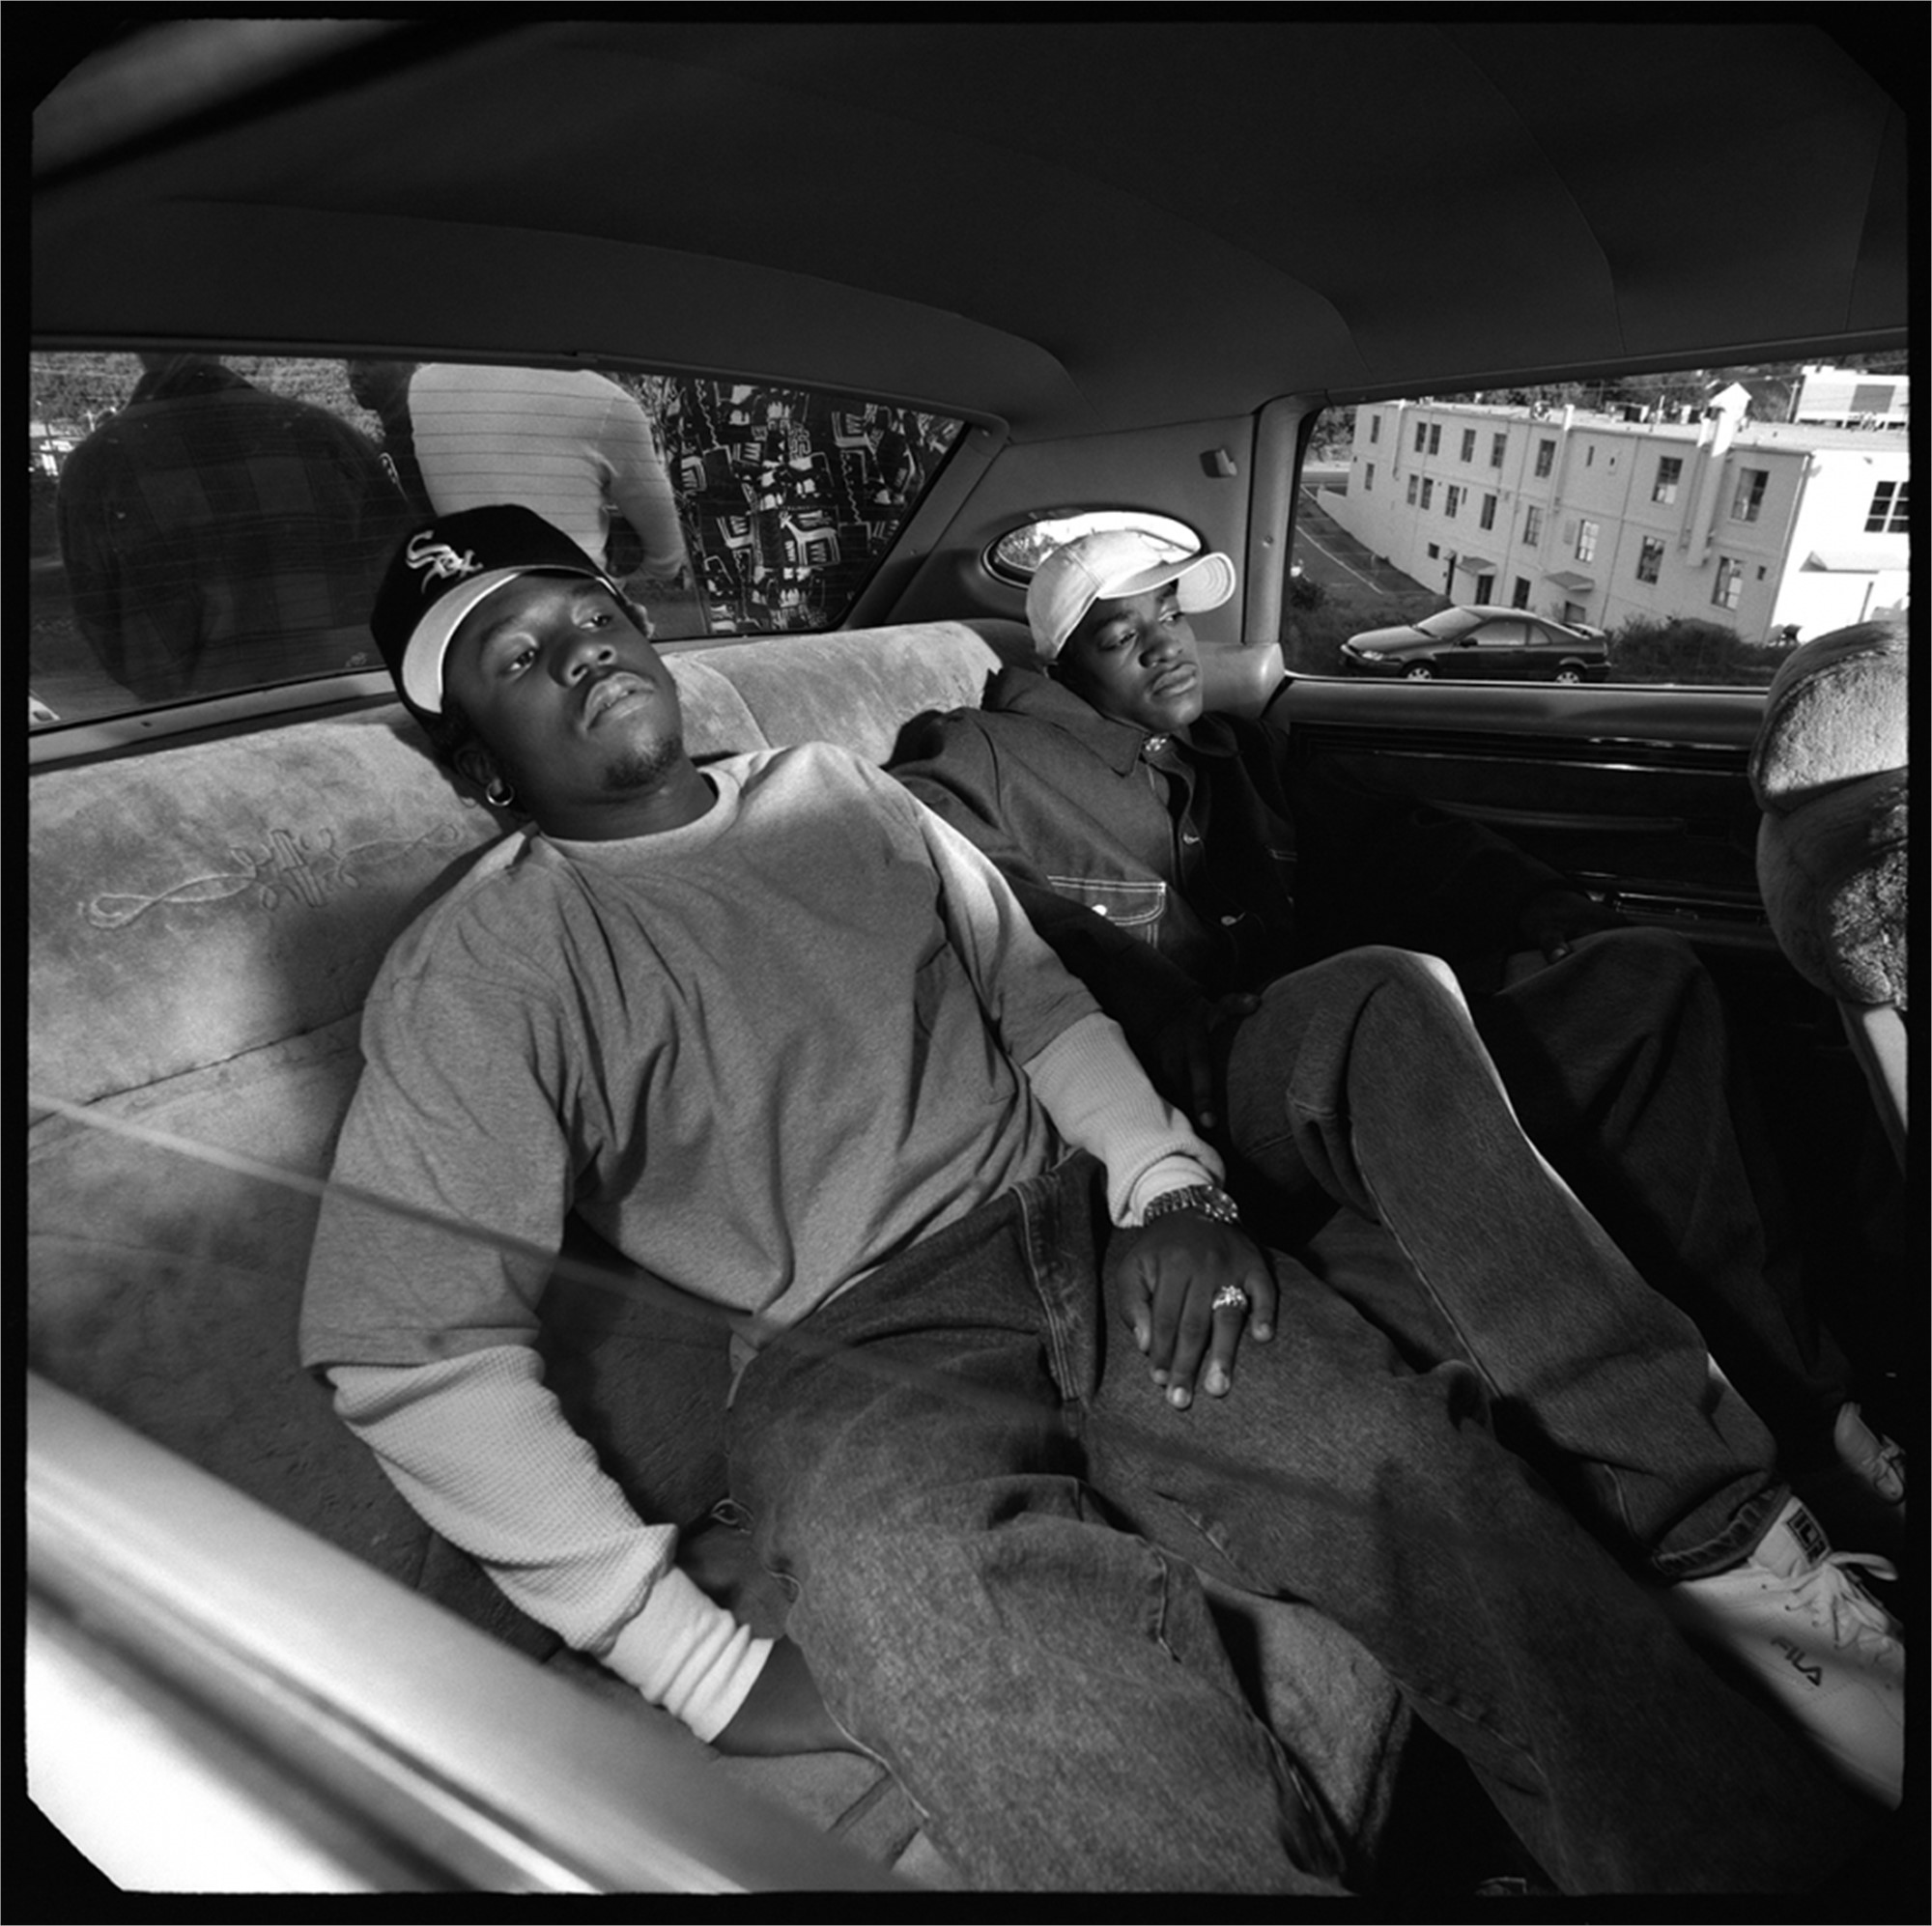 93125 Outkast In the Car BW by Timothy White